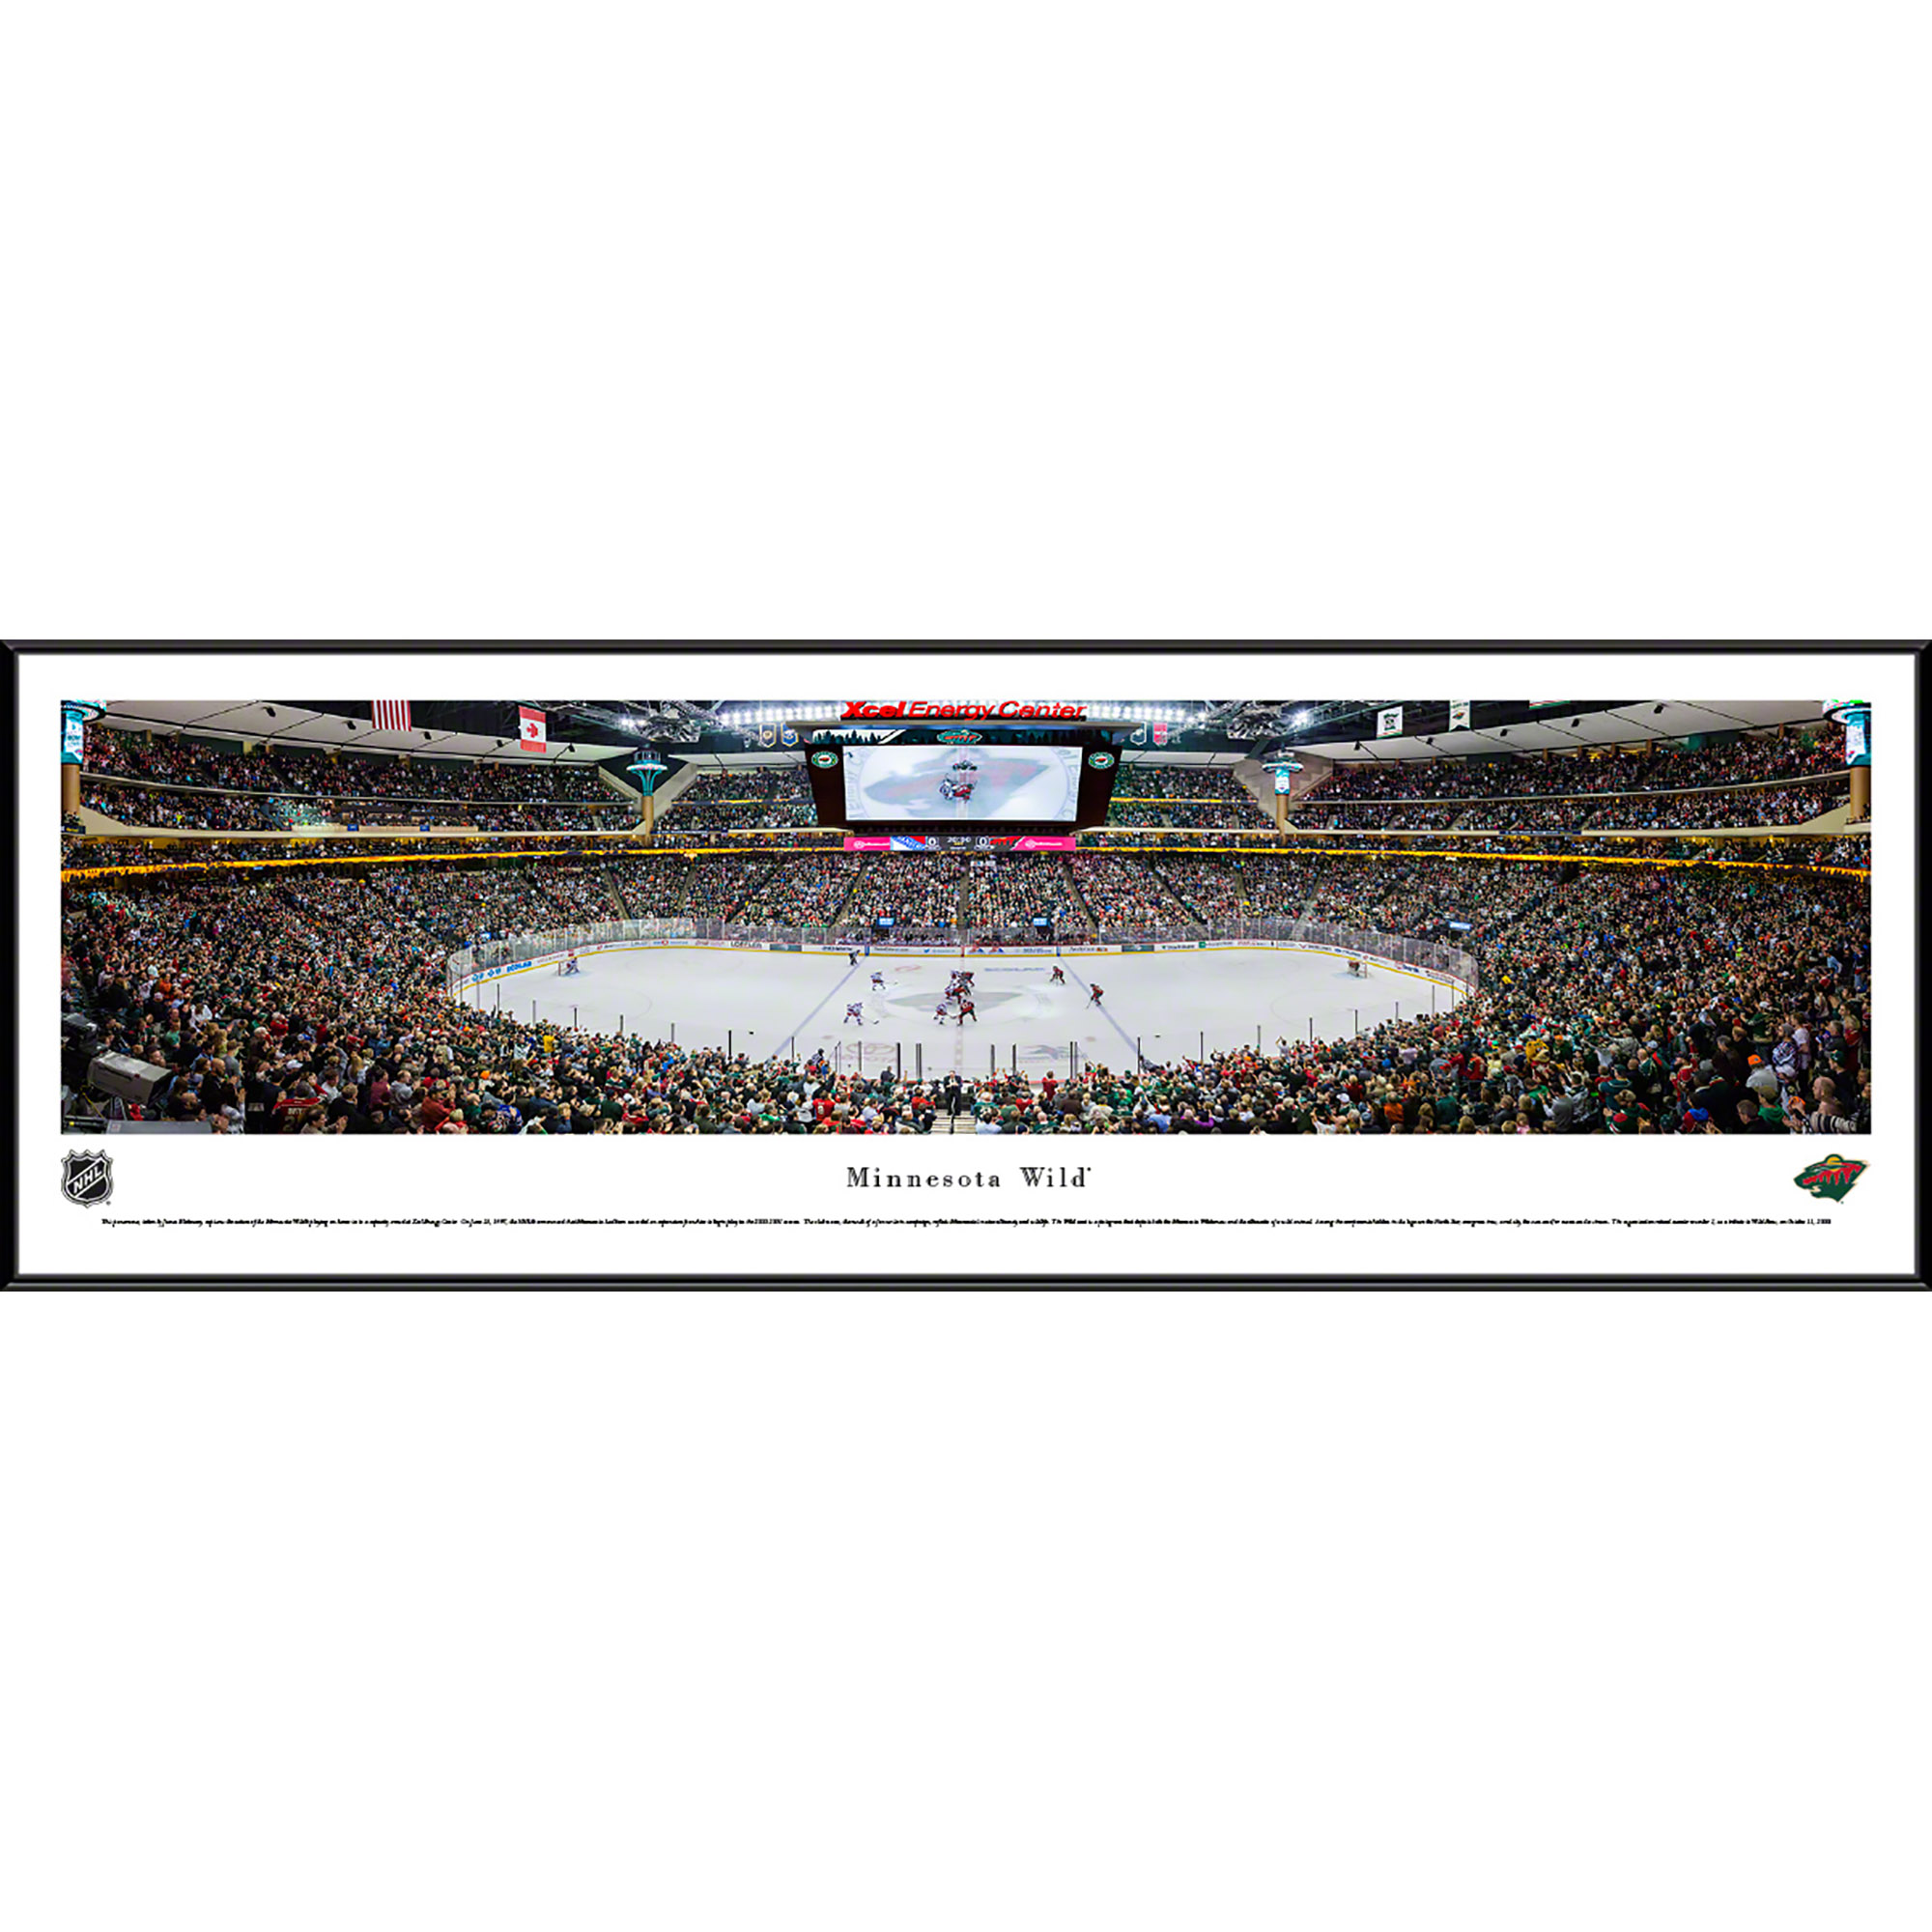 Minnesota Wild - Center Ice at Xcel Energy Center - Blakeway Panoramas NHL Print with Standard Frame